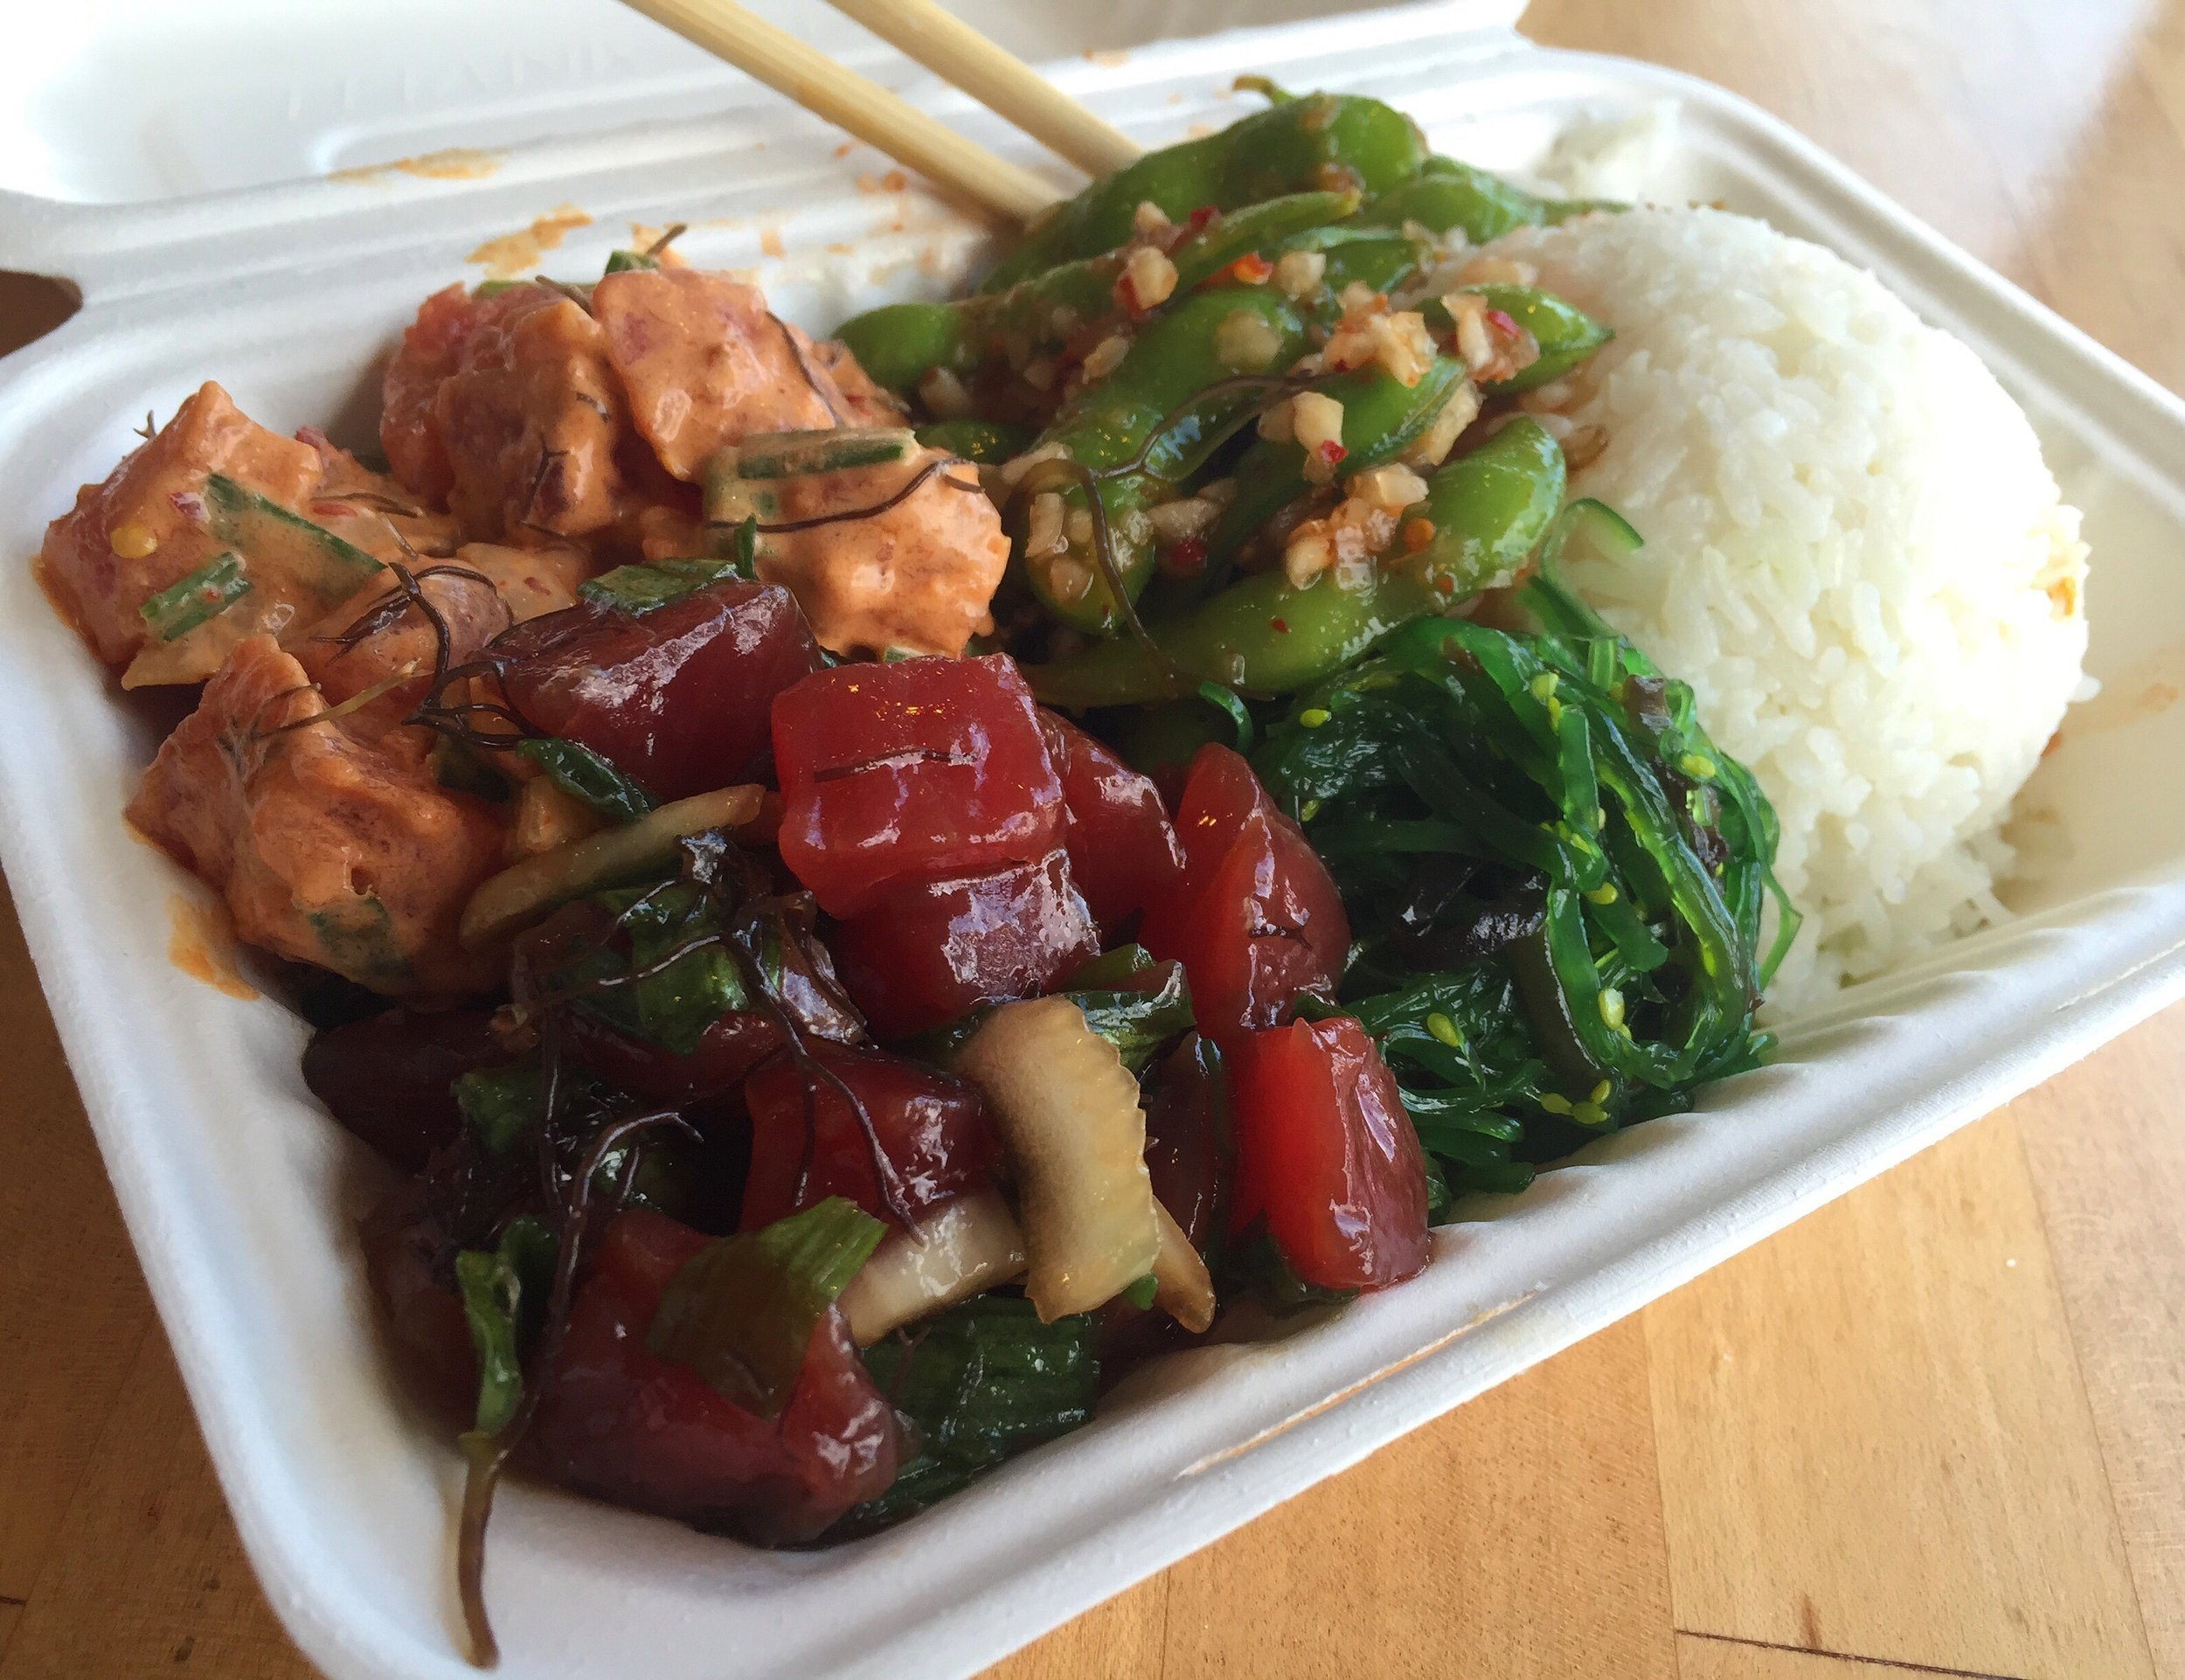 Pictured: Spicy poke, shoyu poke, spicy edamame, seaweed salad and white rice.